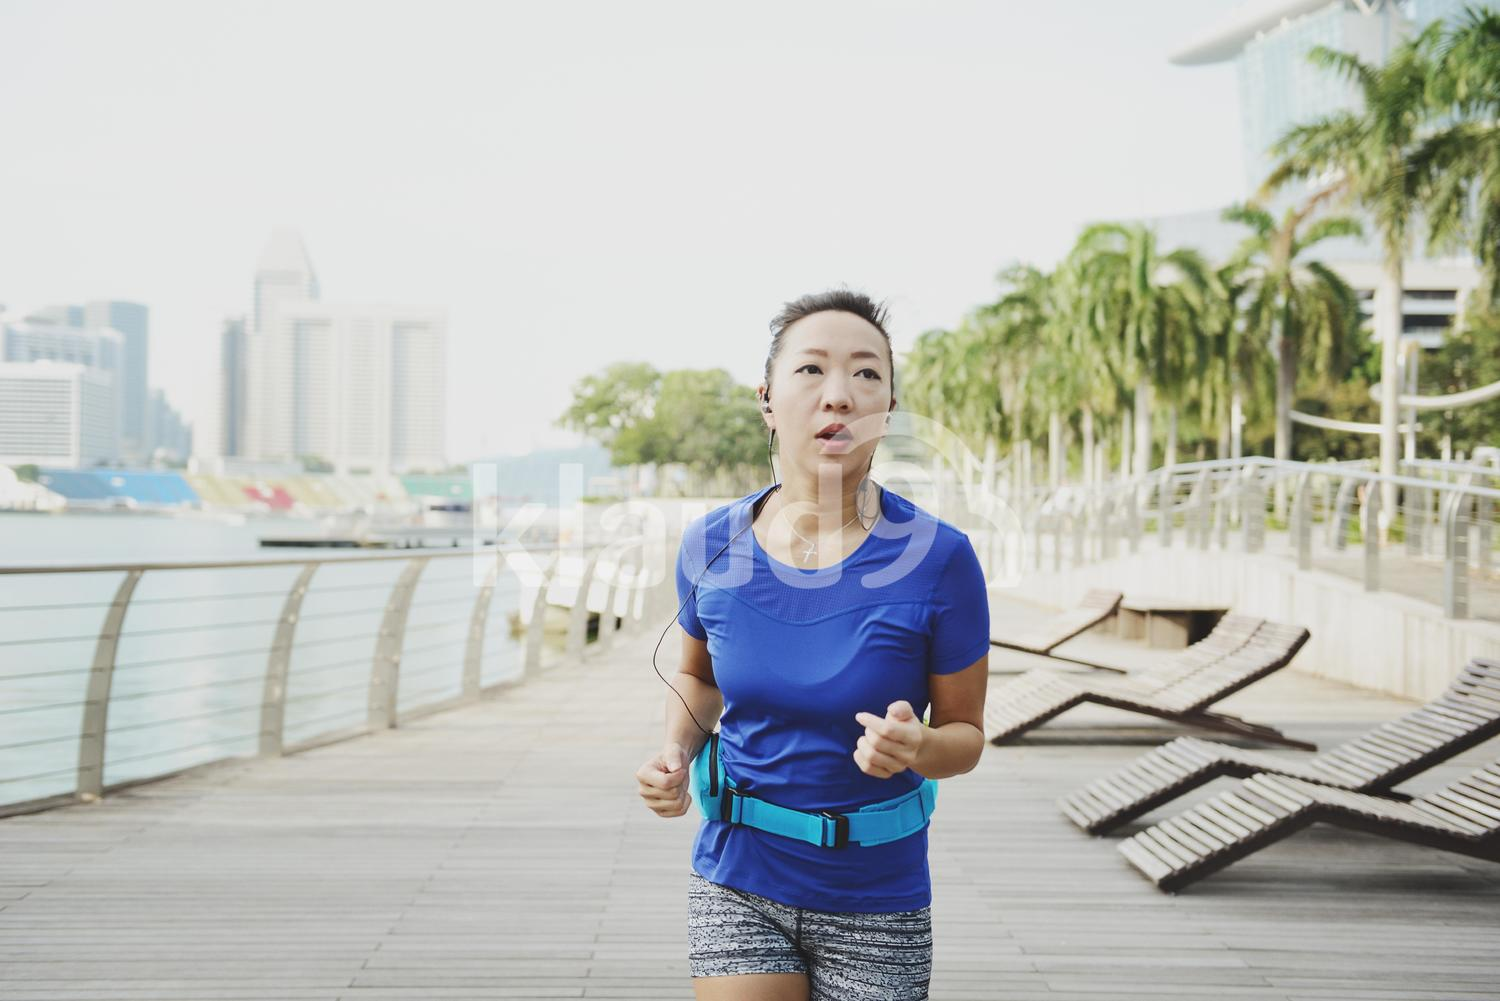 Working Out at Marina Bay Sands